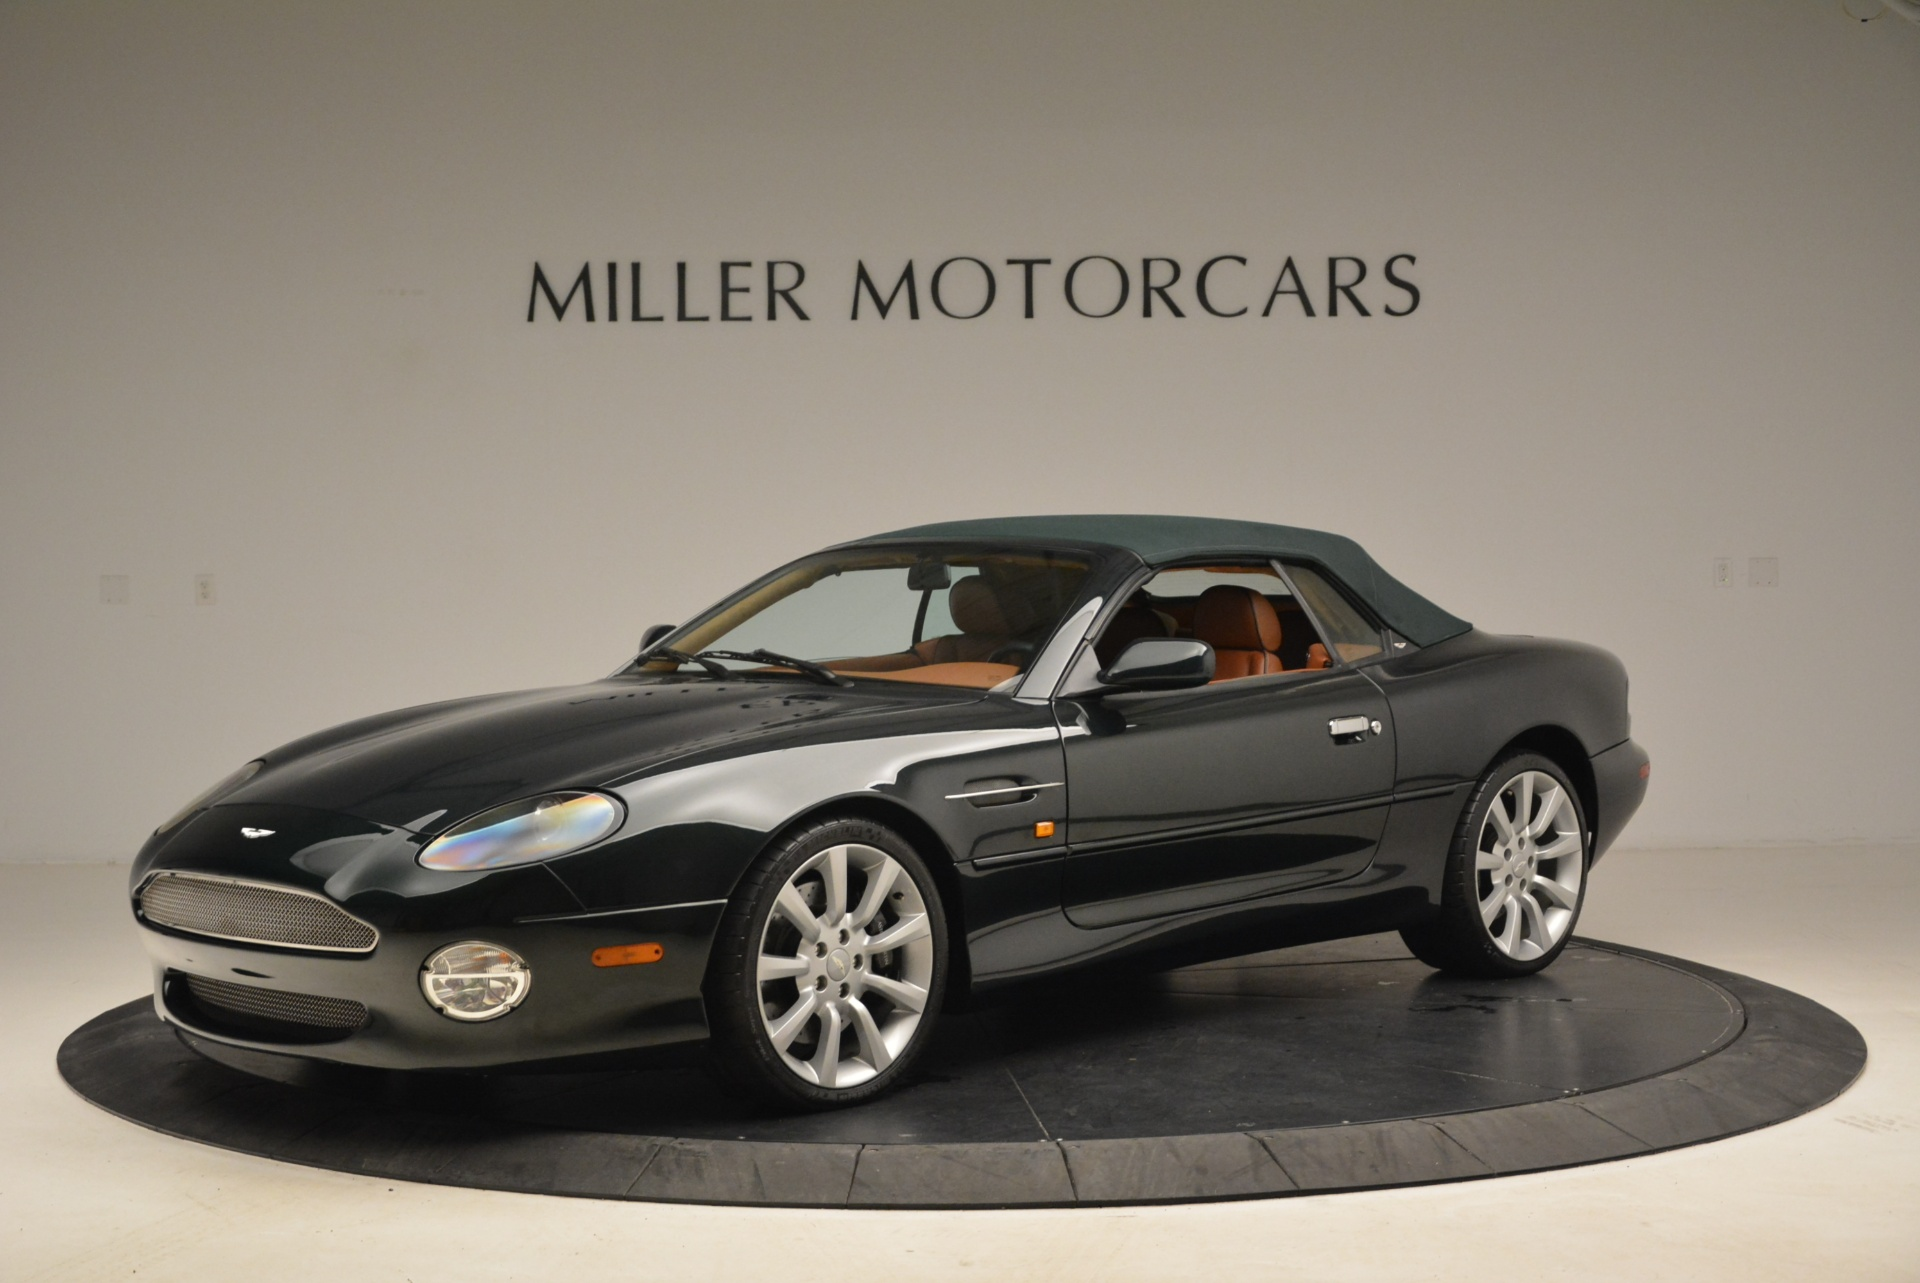 Used 2003 Aston Martin DB7 Vantage Volante For Sale In Greenwich, CT 2084_p14